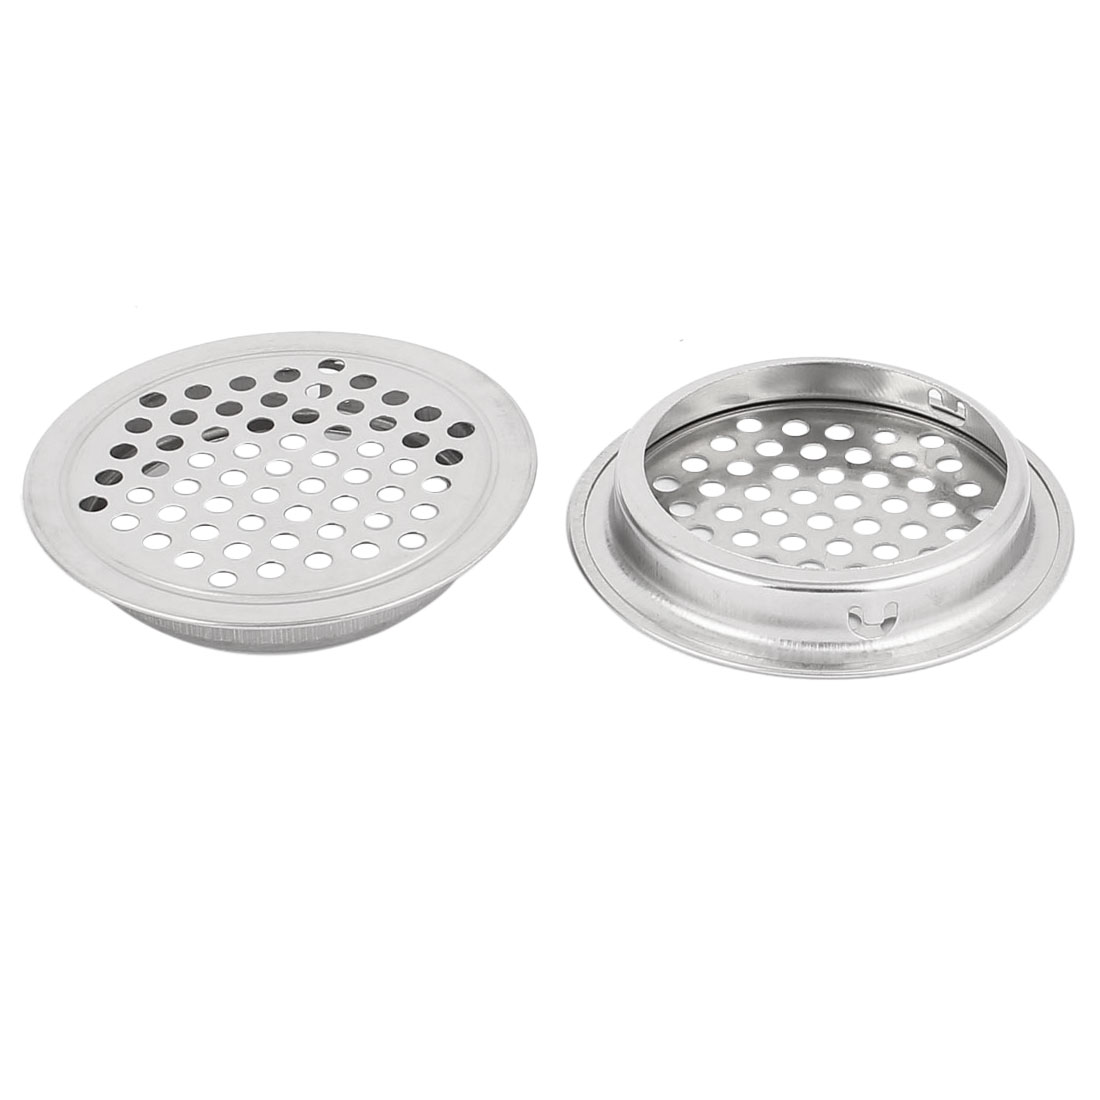 53mm Bottom Dia Mesh Panel Shoes Cupboard Cabinet Air Vent Louver Cover 2pcs